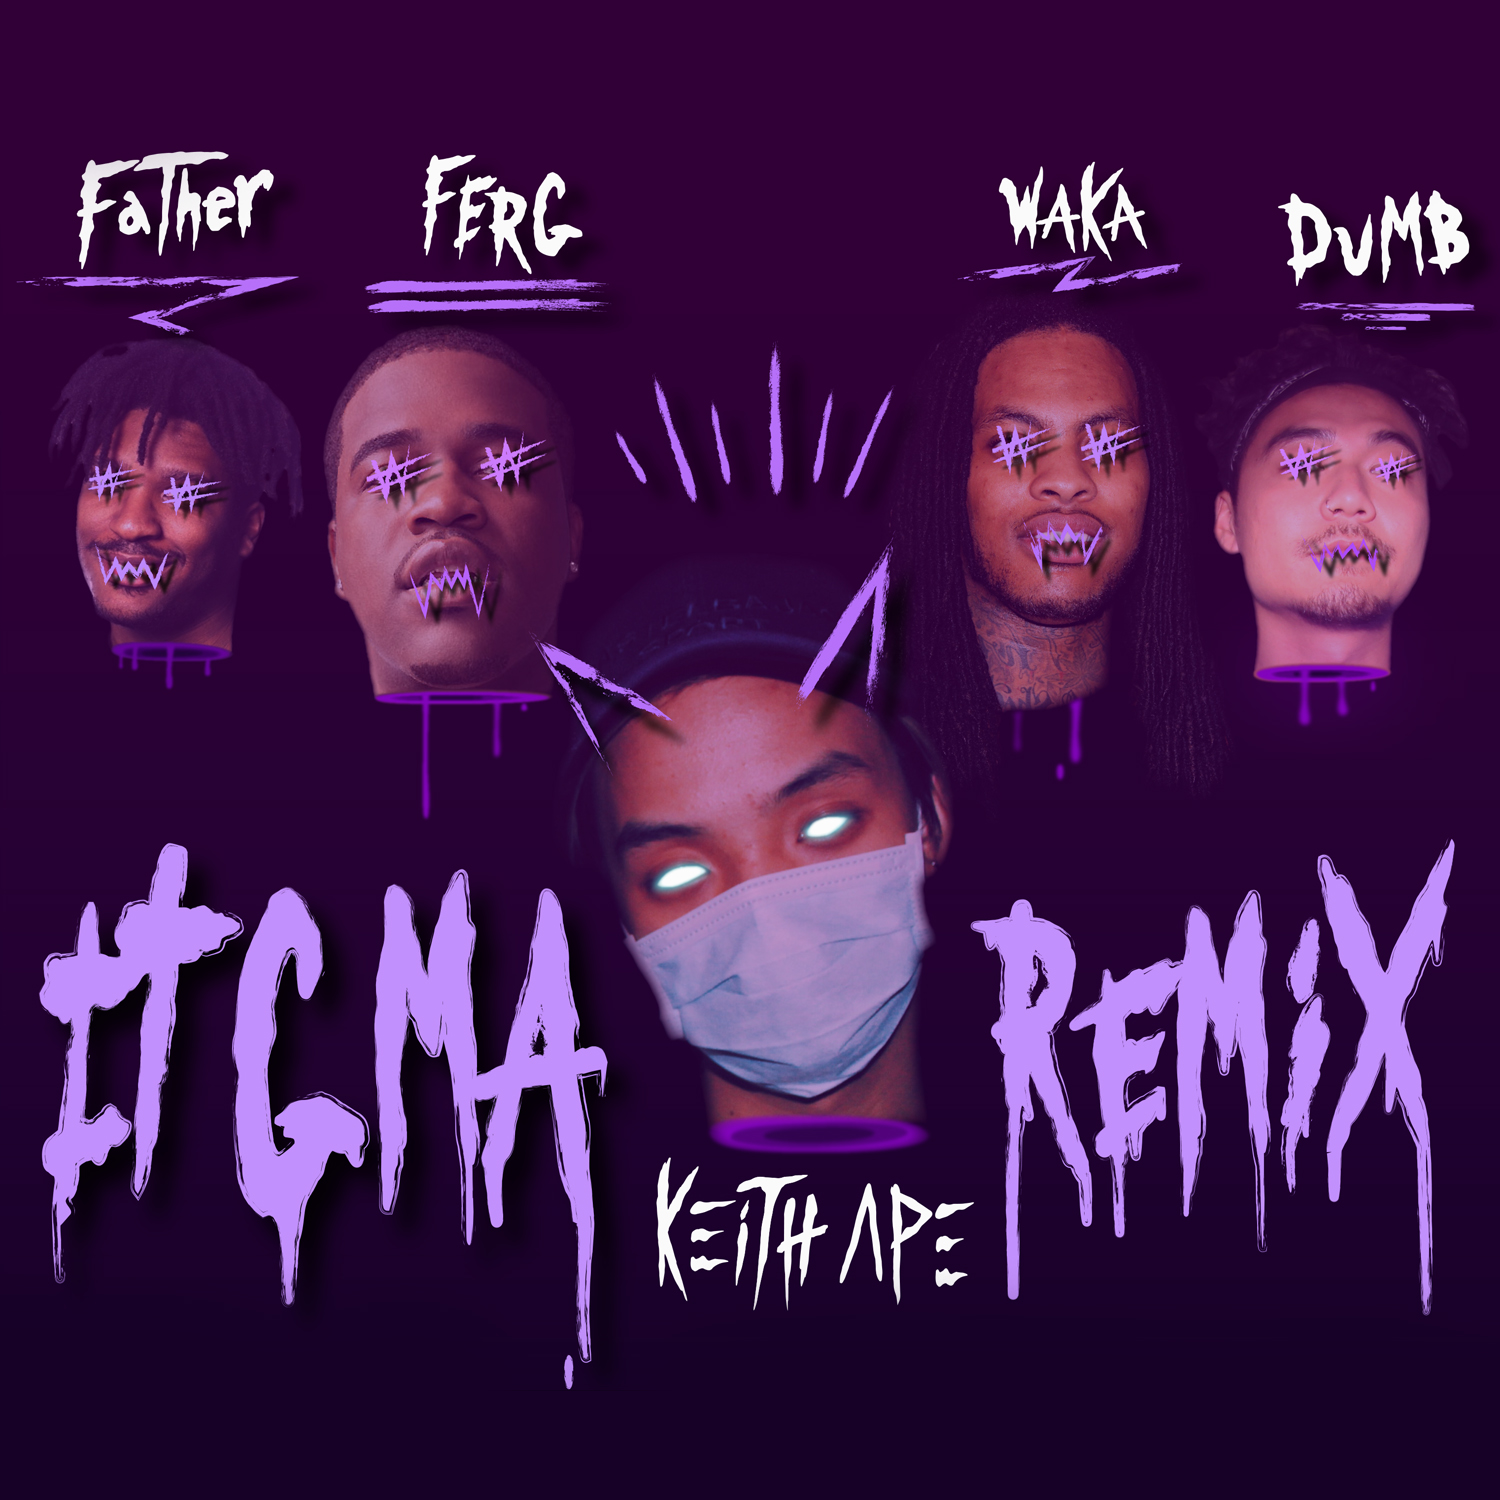 RELEASES | Keith Ape - It G Ma Remix